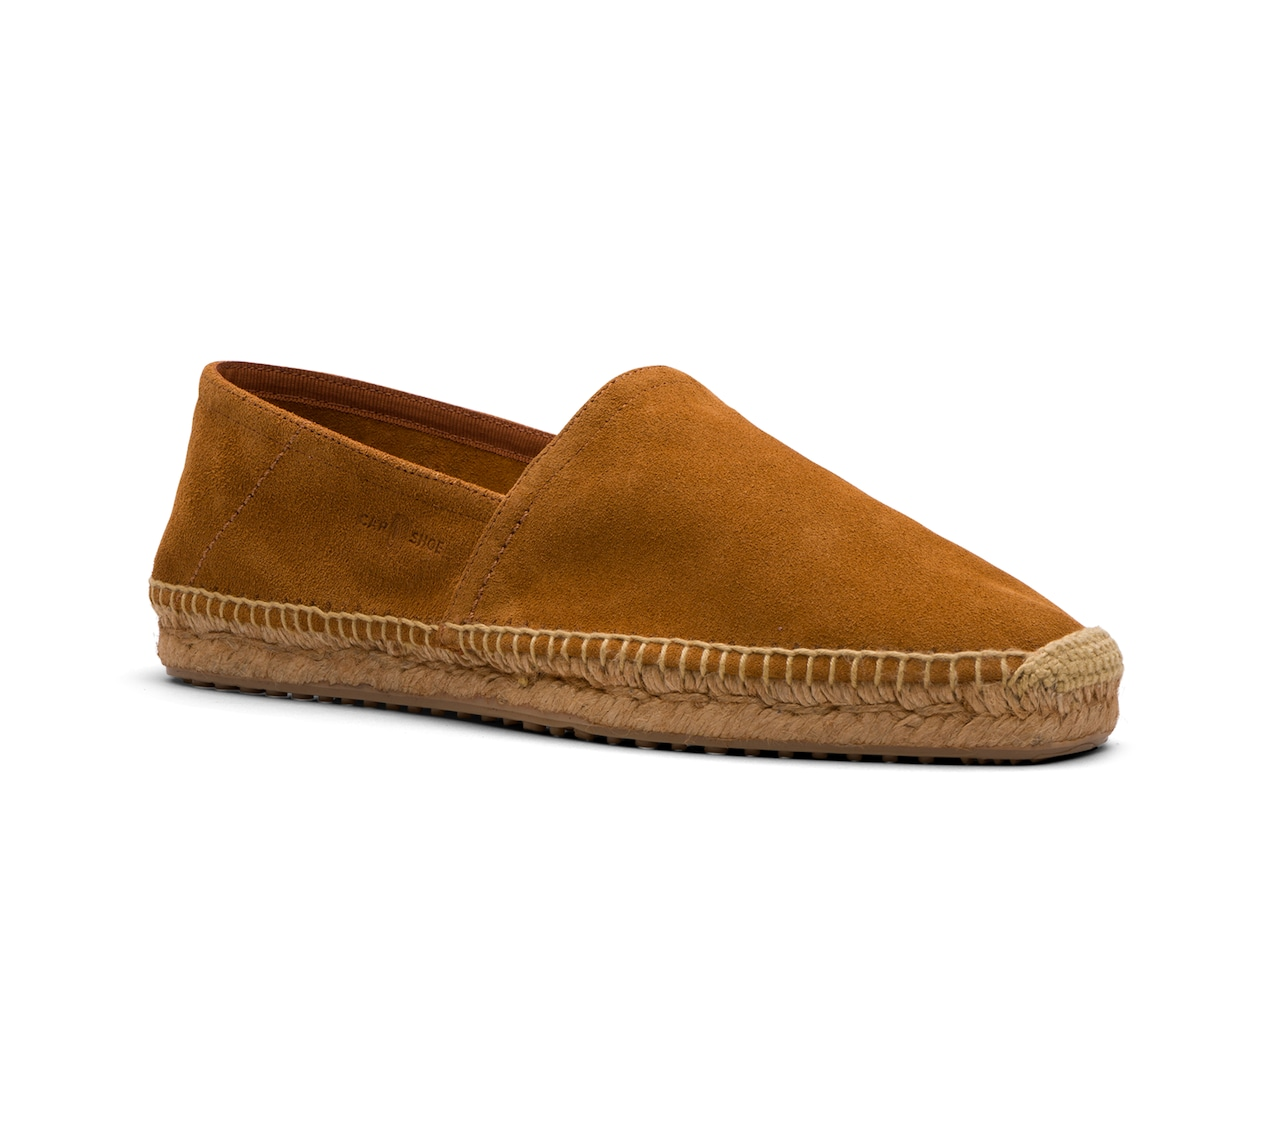 ESPADRILLAS IN UNLINED SUEDE